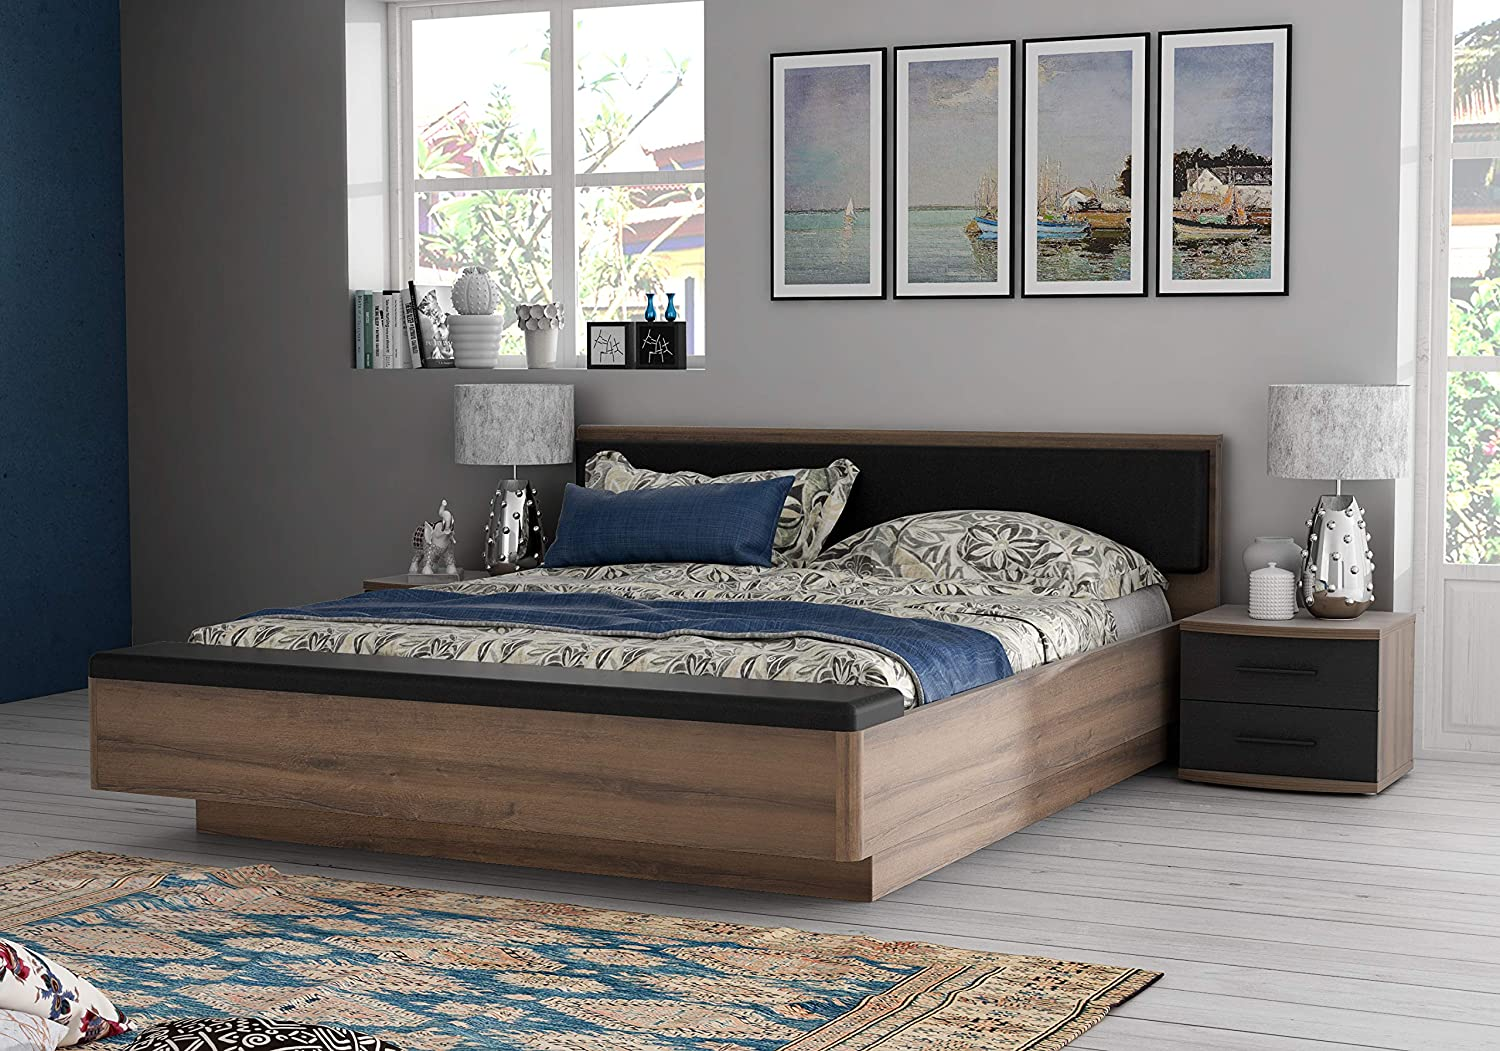 Zuari Rondino King Size Engineered Wood Bed With Hydraulic